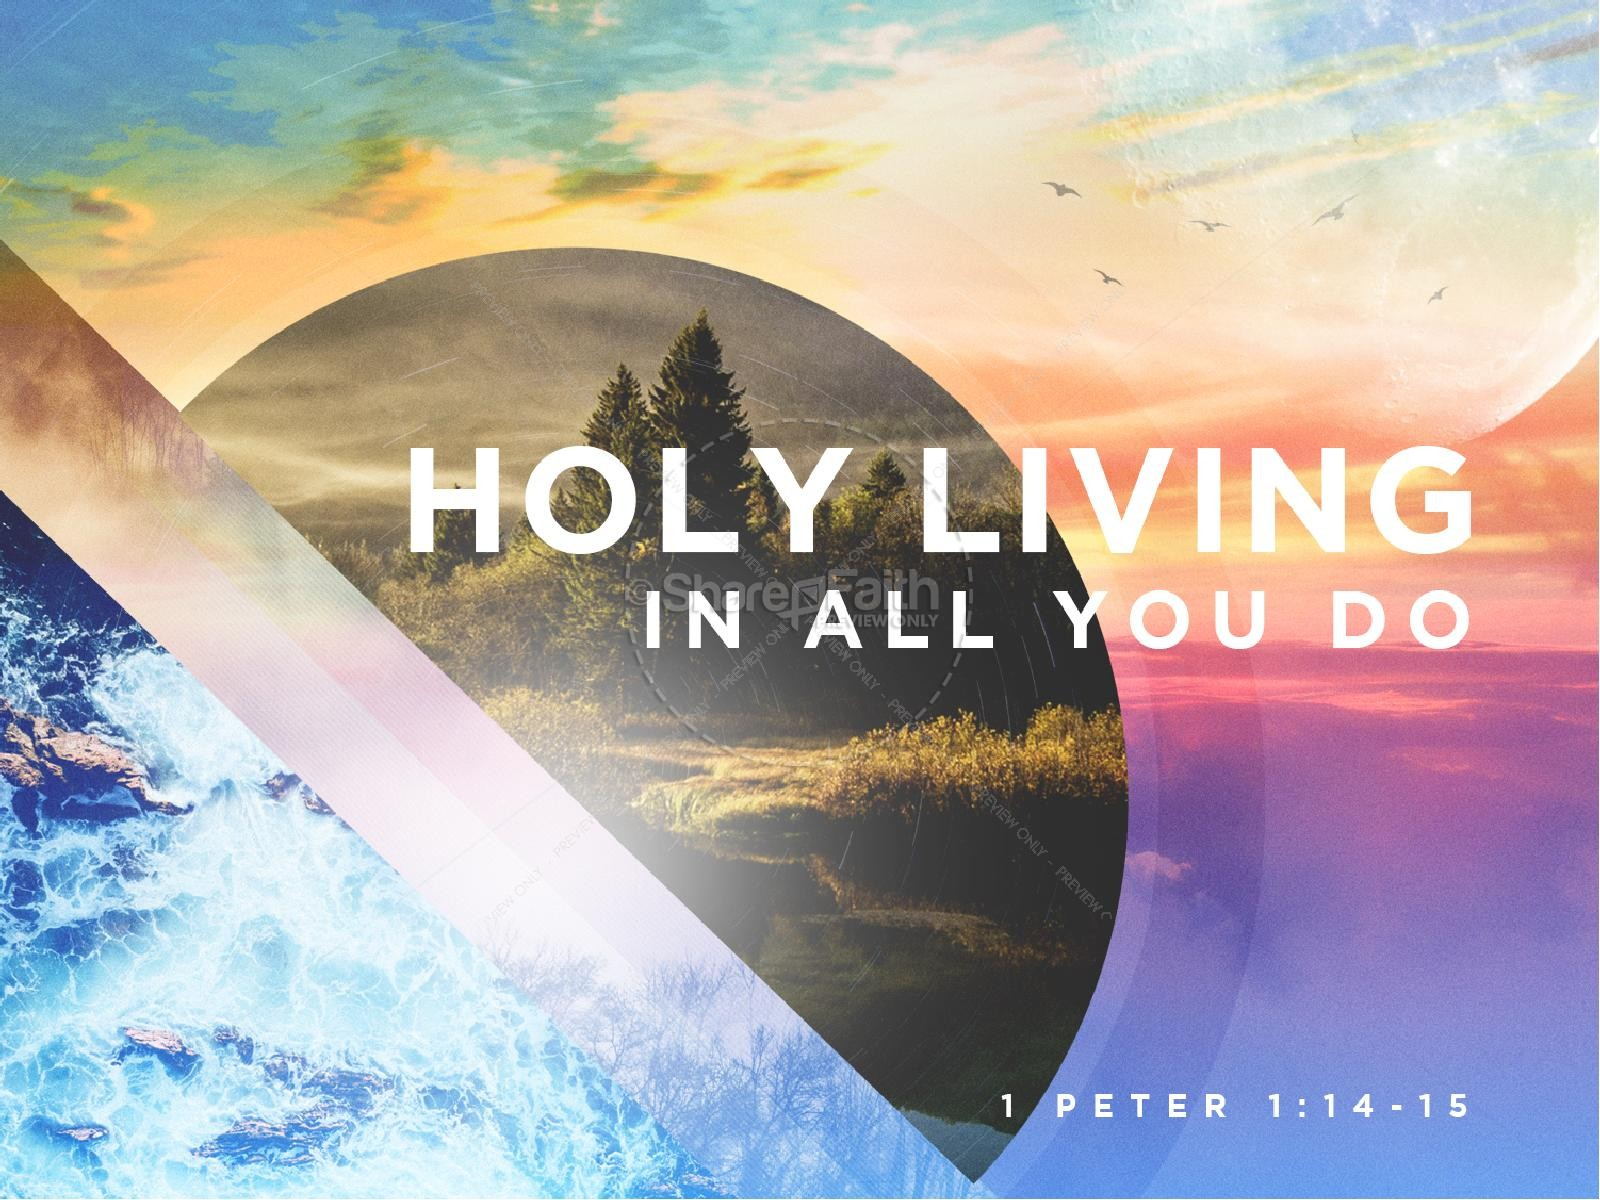 an expository sermon on holy living Find holy living sermons and illustrations free access to sermons on holy living, church sermons, illustrations on holy living, and powerpoints for preaching on holy living.